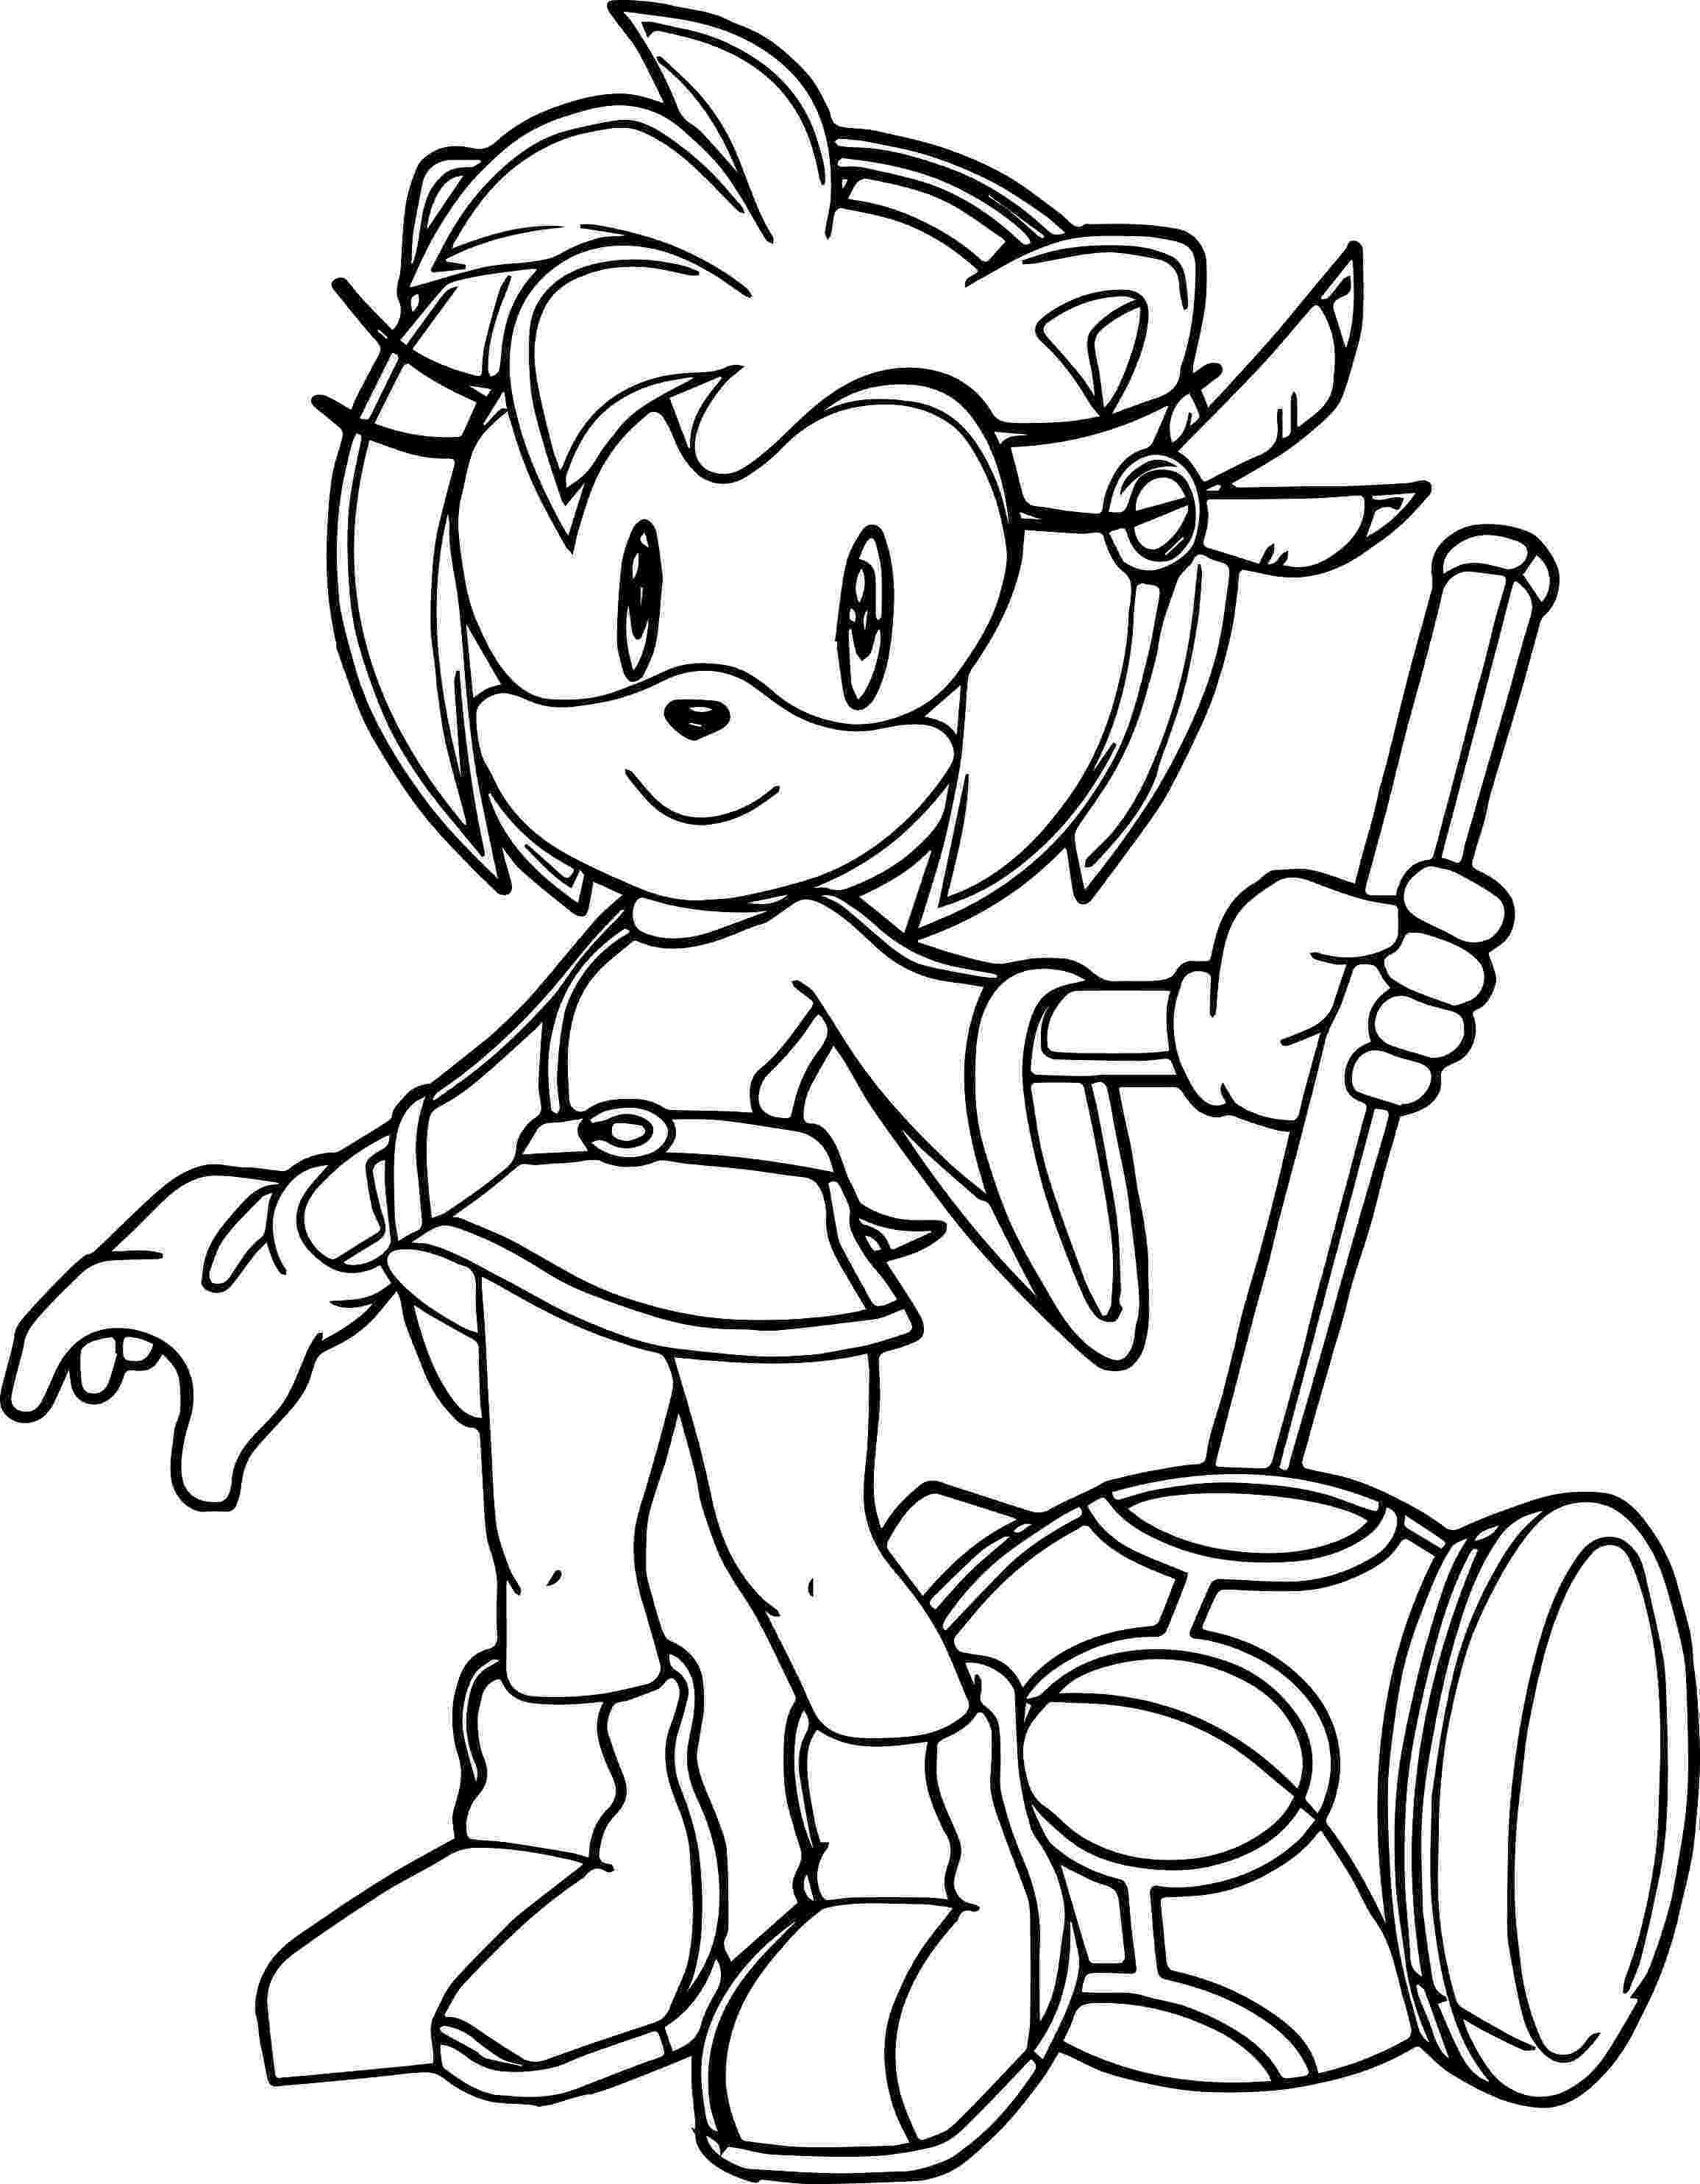 amy rose coloring pages amy rose coloring pages to download and print for free coloring pages amy rose